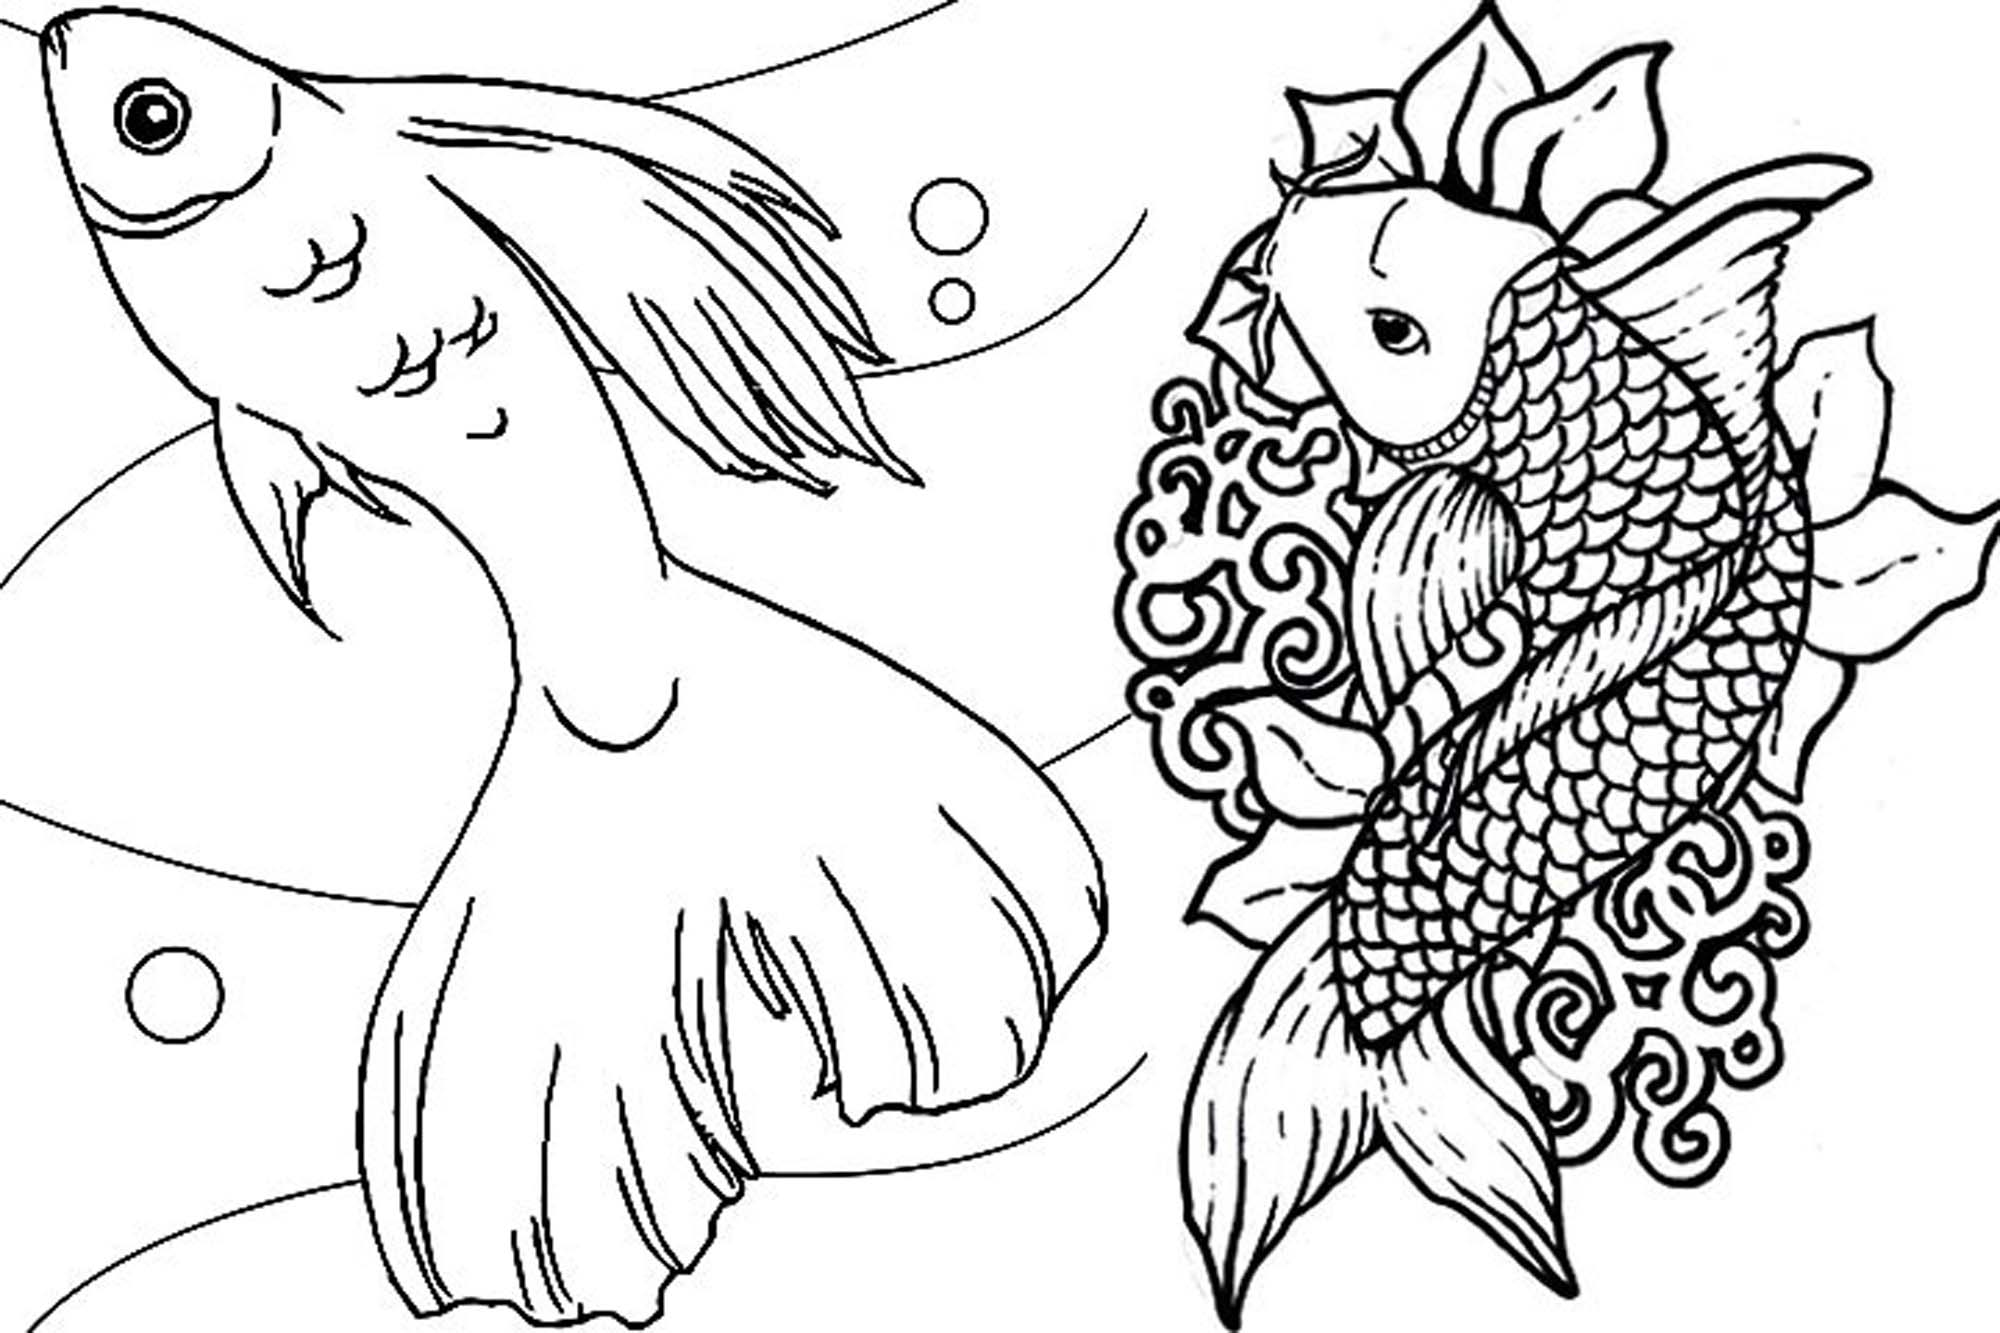 2000x1333 Fish Coloring Pages For Adults